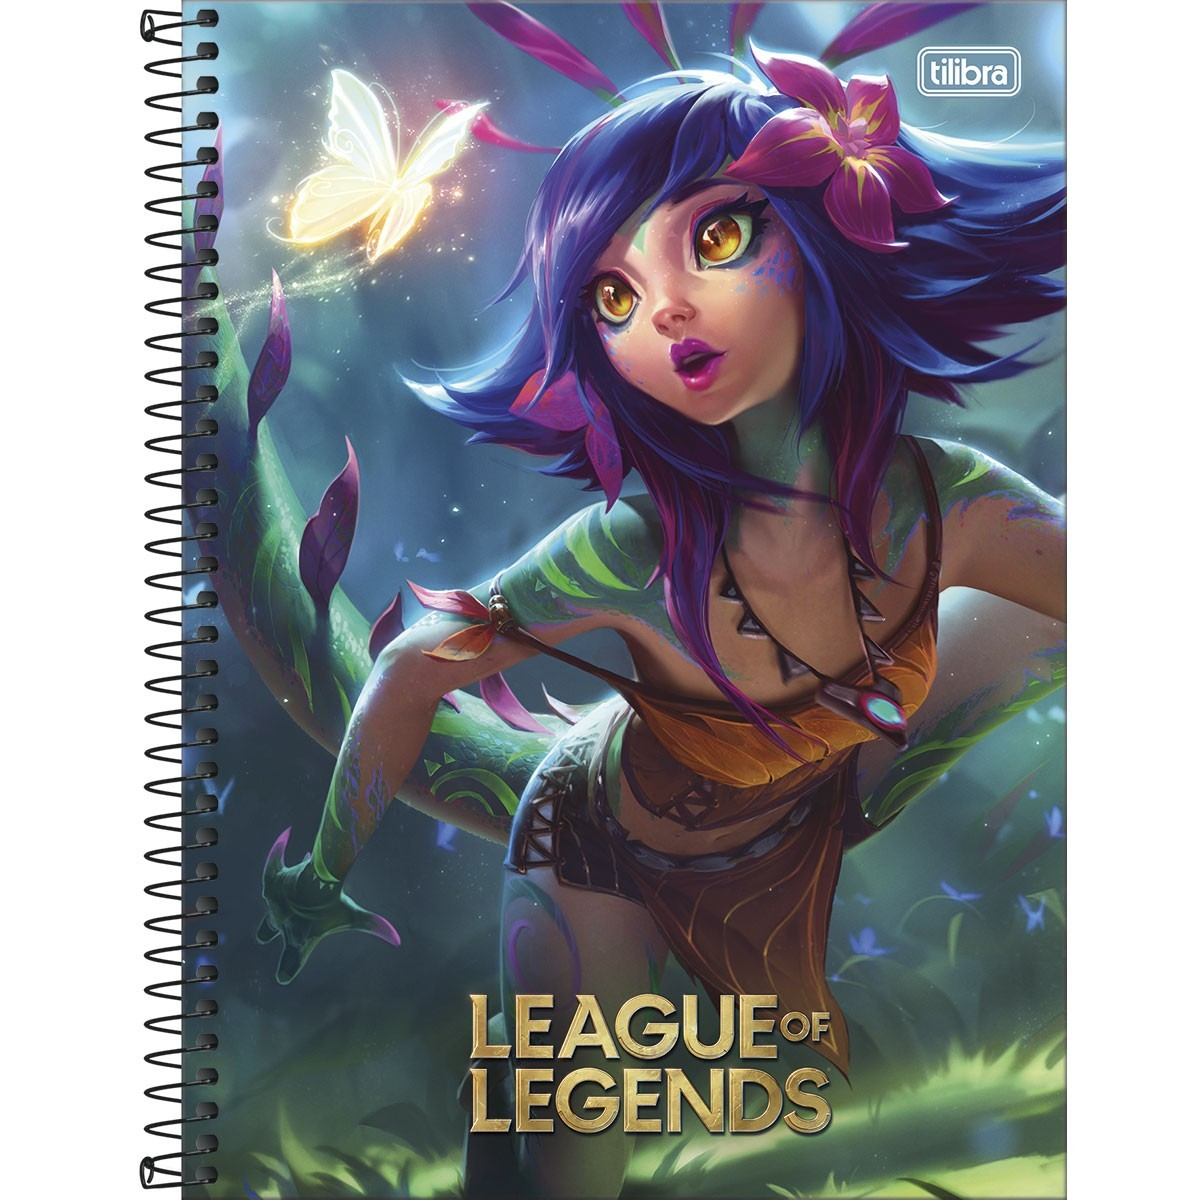 Caderno Espiral Capa Dura Universitário 16 Matérias League of Legends Tresh Nekko 256 Folhas